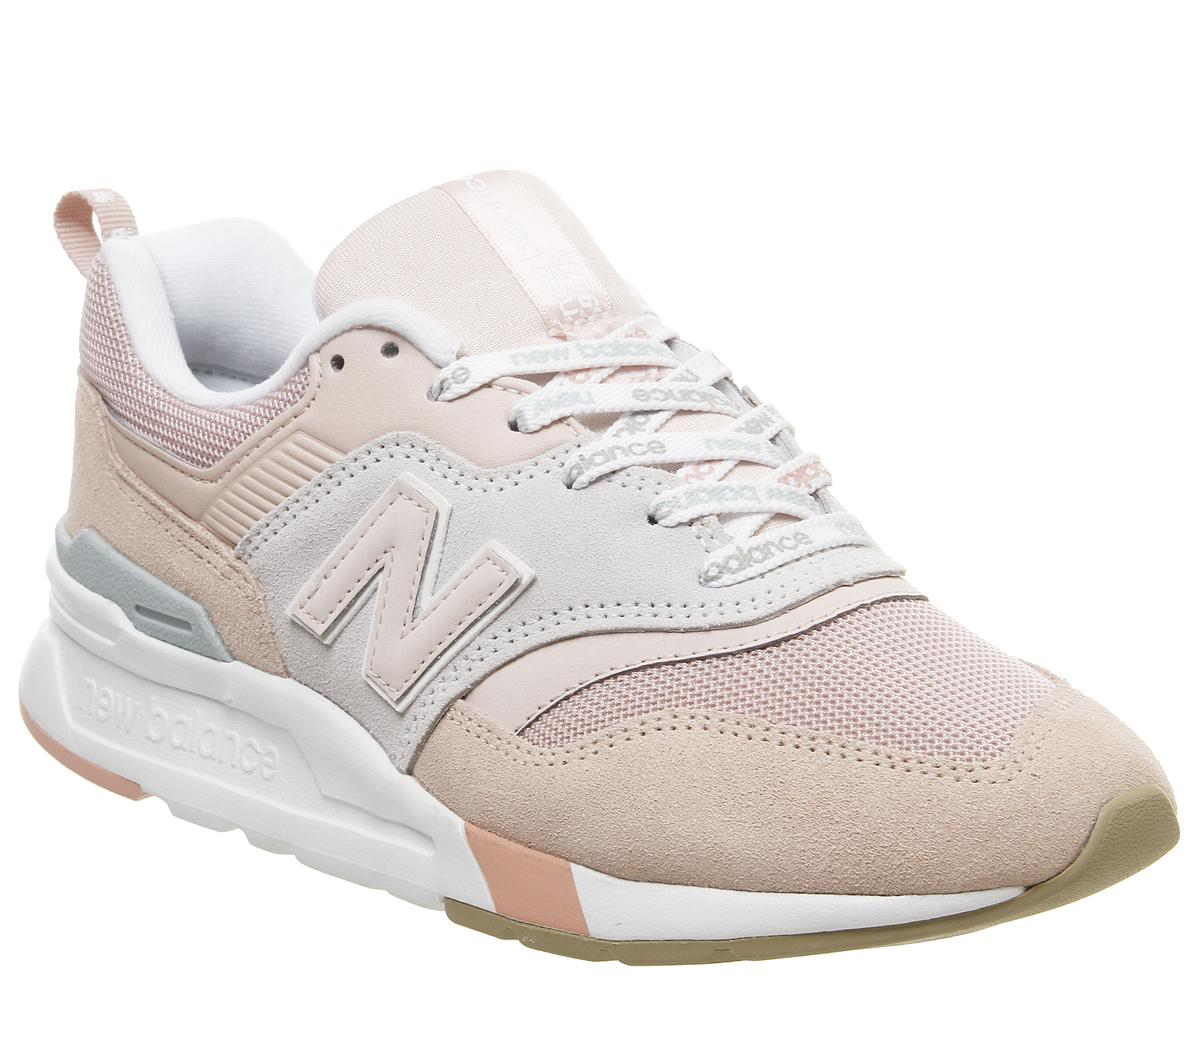 New Balance 997 Trainers Oyster Pink